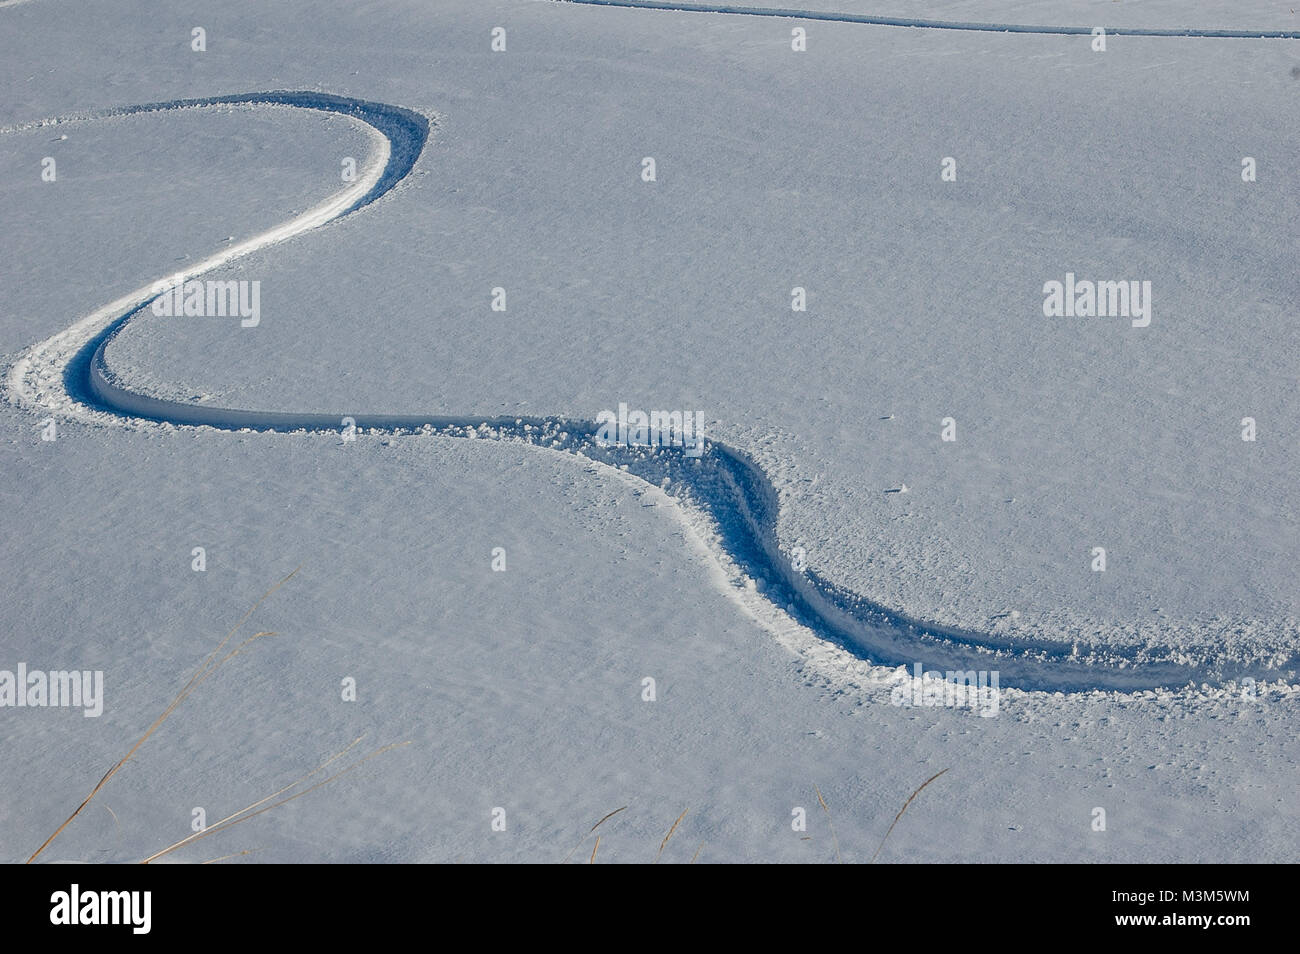 traces of skis in off-piste - Stock Image